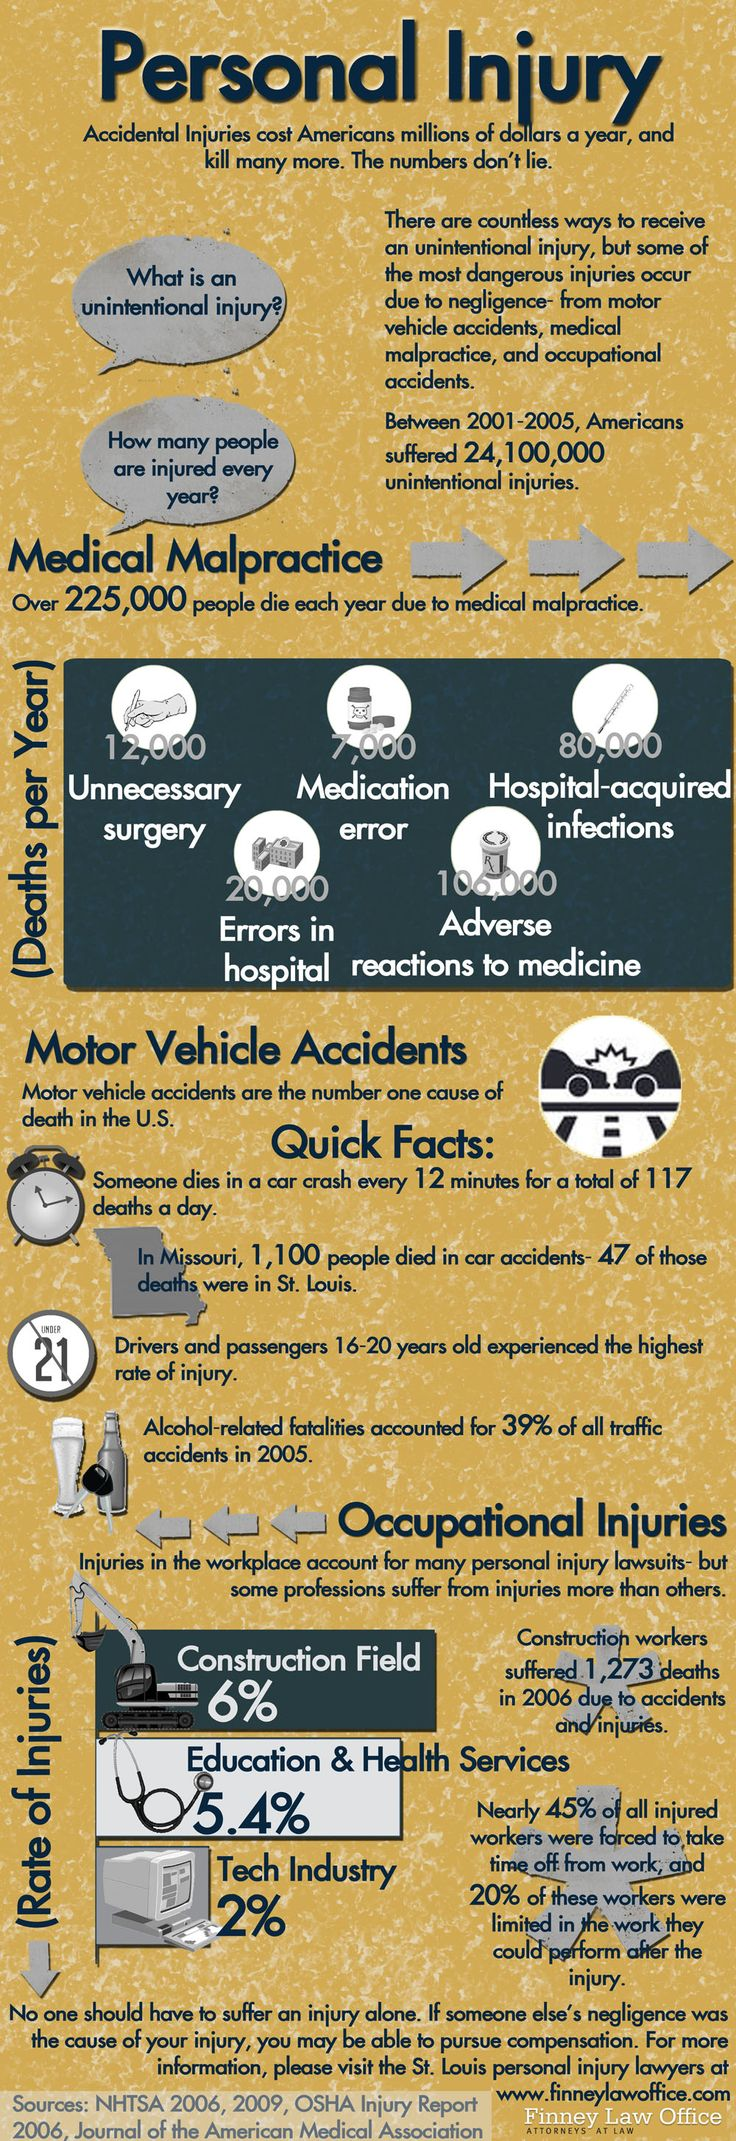 Personal Injury Costs The Numbers Donu0027t Lie